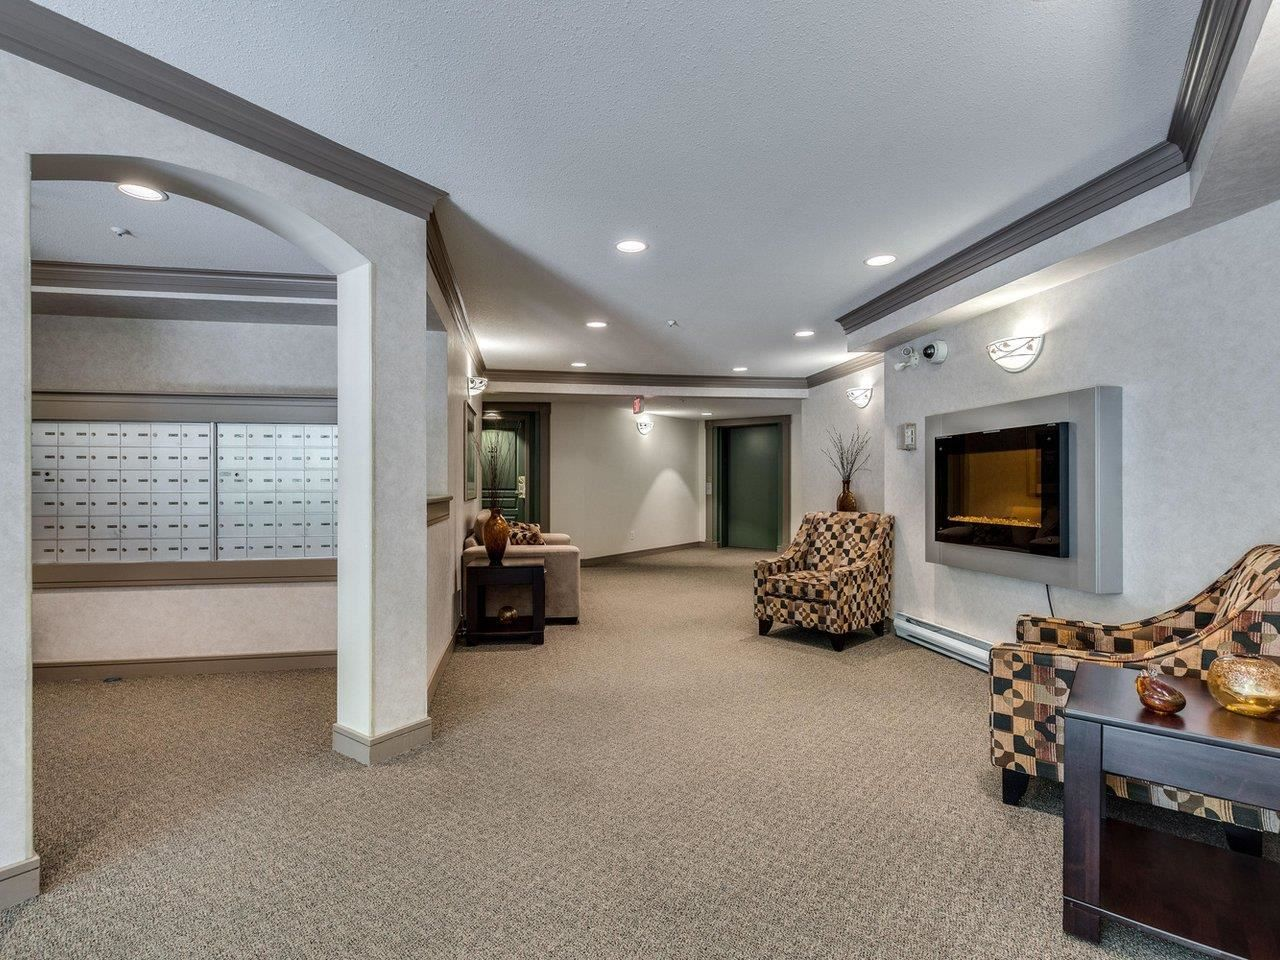 """Photo 3: Photos: 320 1252 TOWN CENTRE Boulevard in Coquitlam: Canyon Springs Condo for sale in """"The Kennedy"""" : MLS®# R2595291"""